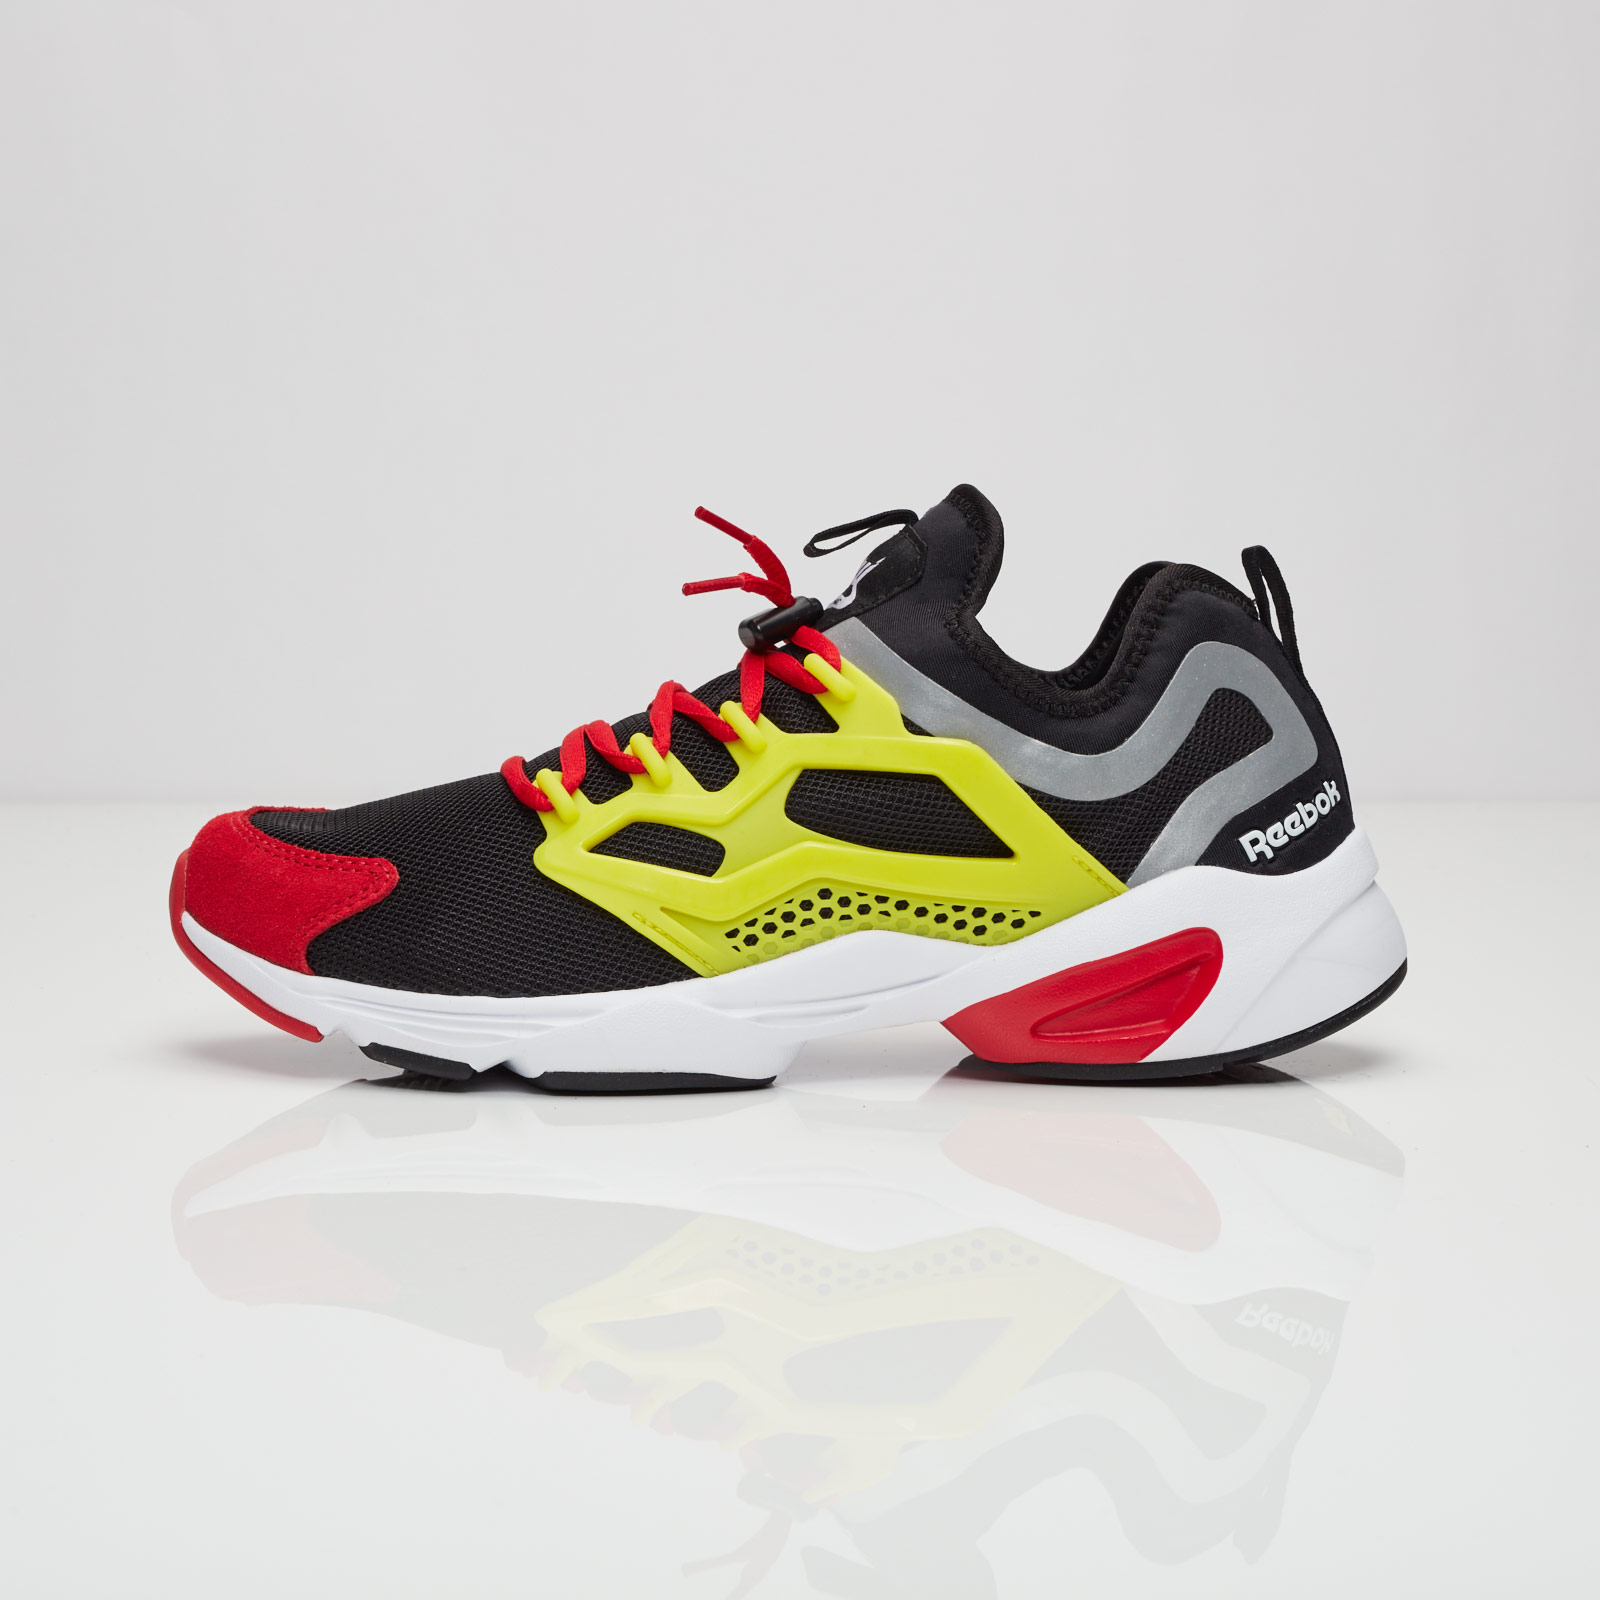 Reebok Fury Adapt Reebok Fury Adapt Reebok Fury Adapt ... 0211e4019